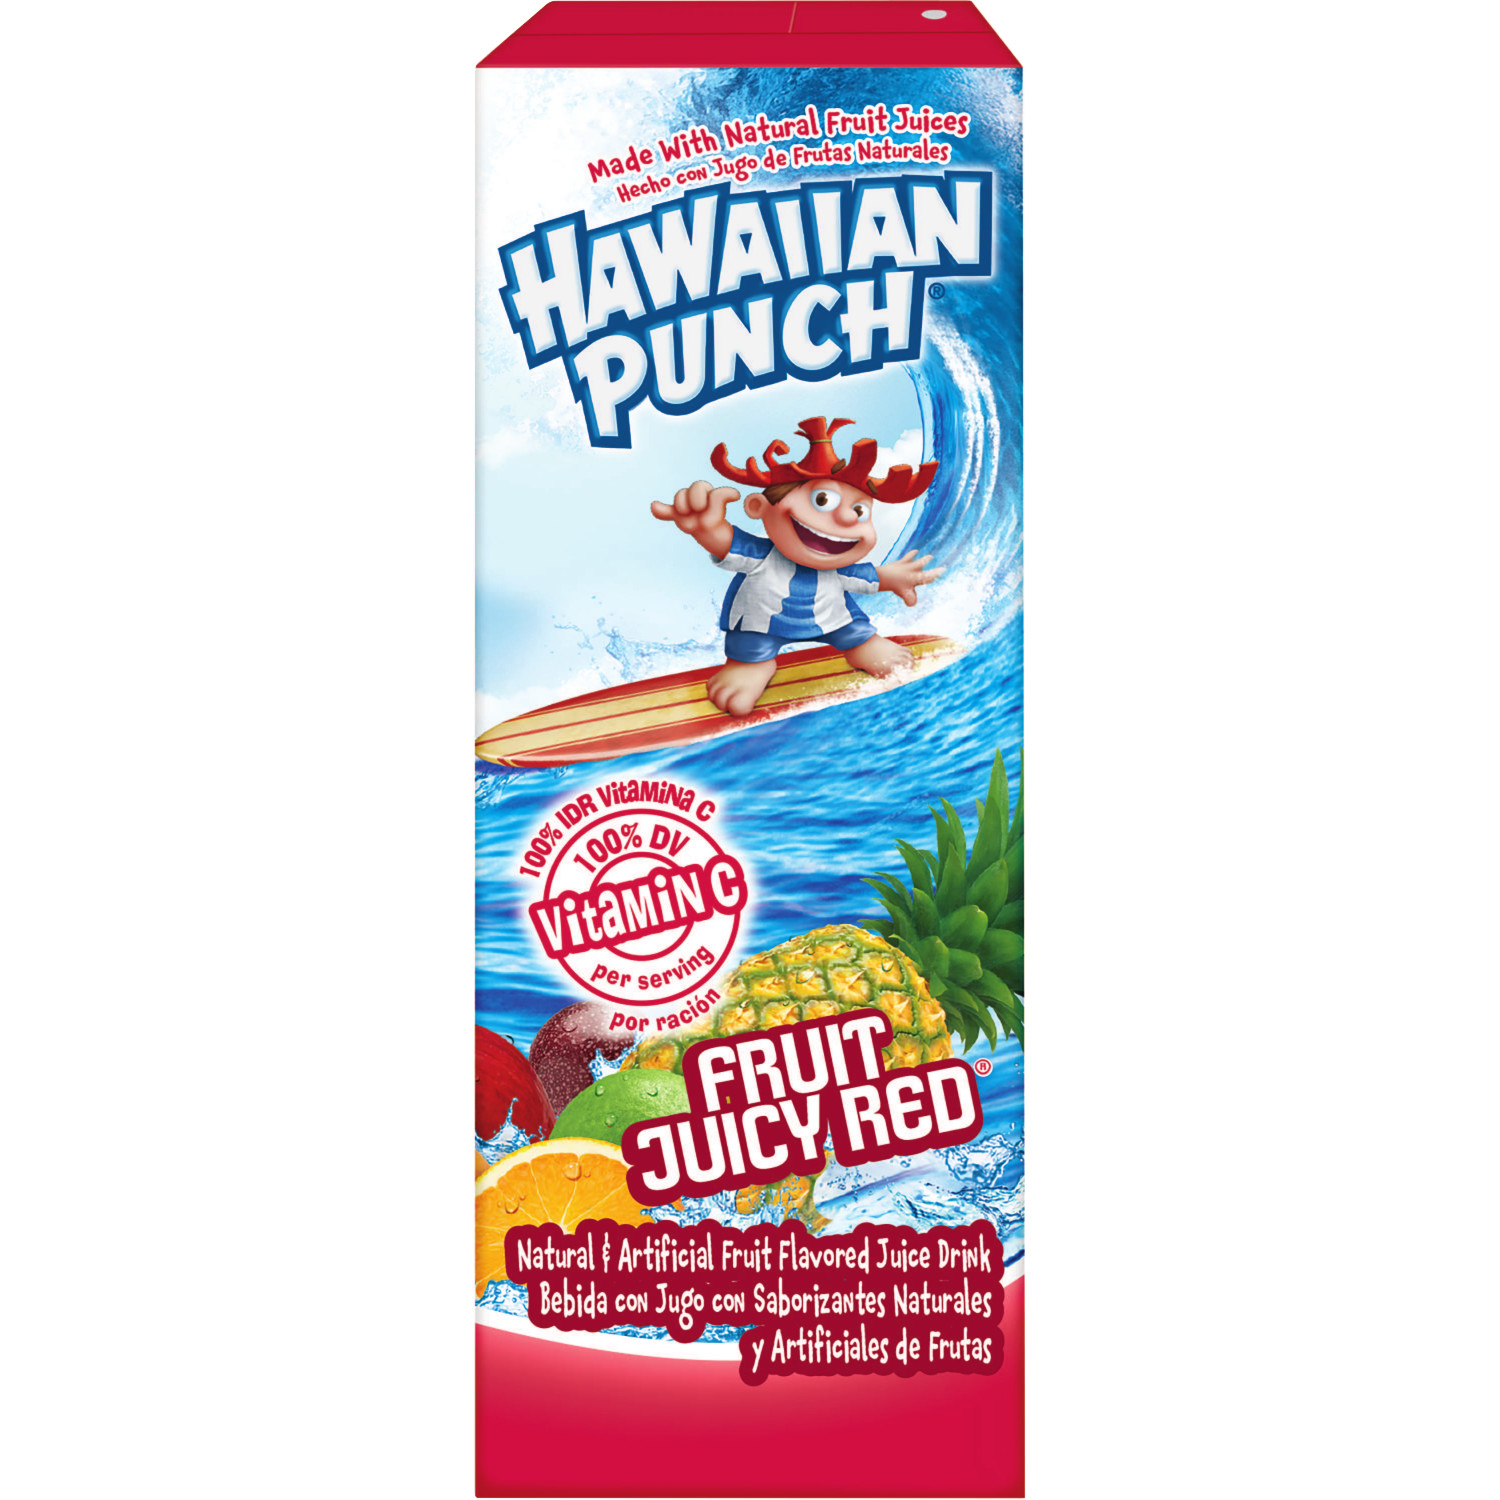 (24 Juice Boxes) Hawaiian Punch Fruit Juicy Red, 6.75 Fl Oz